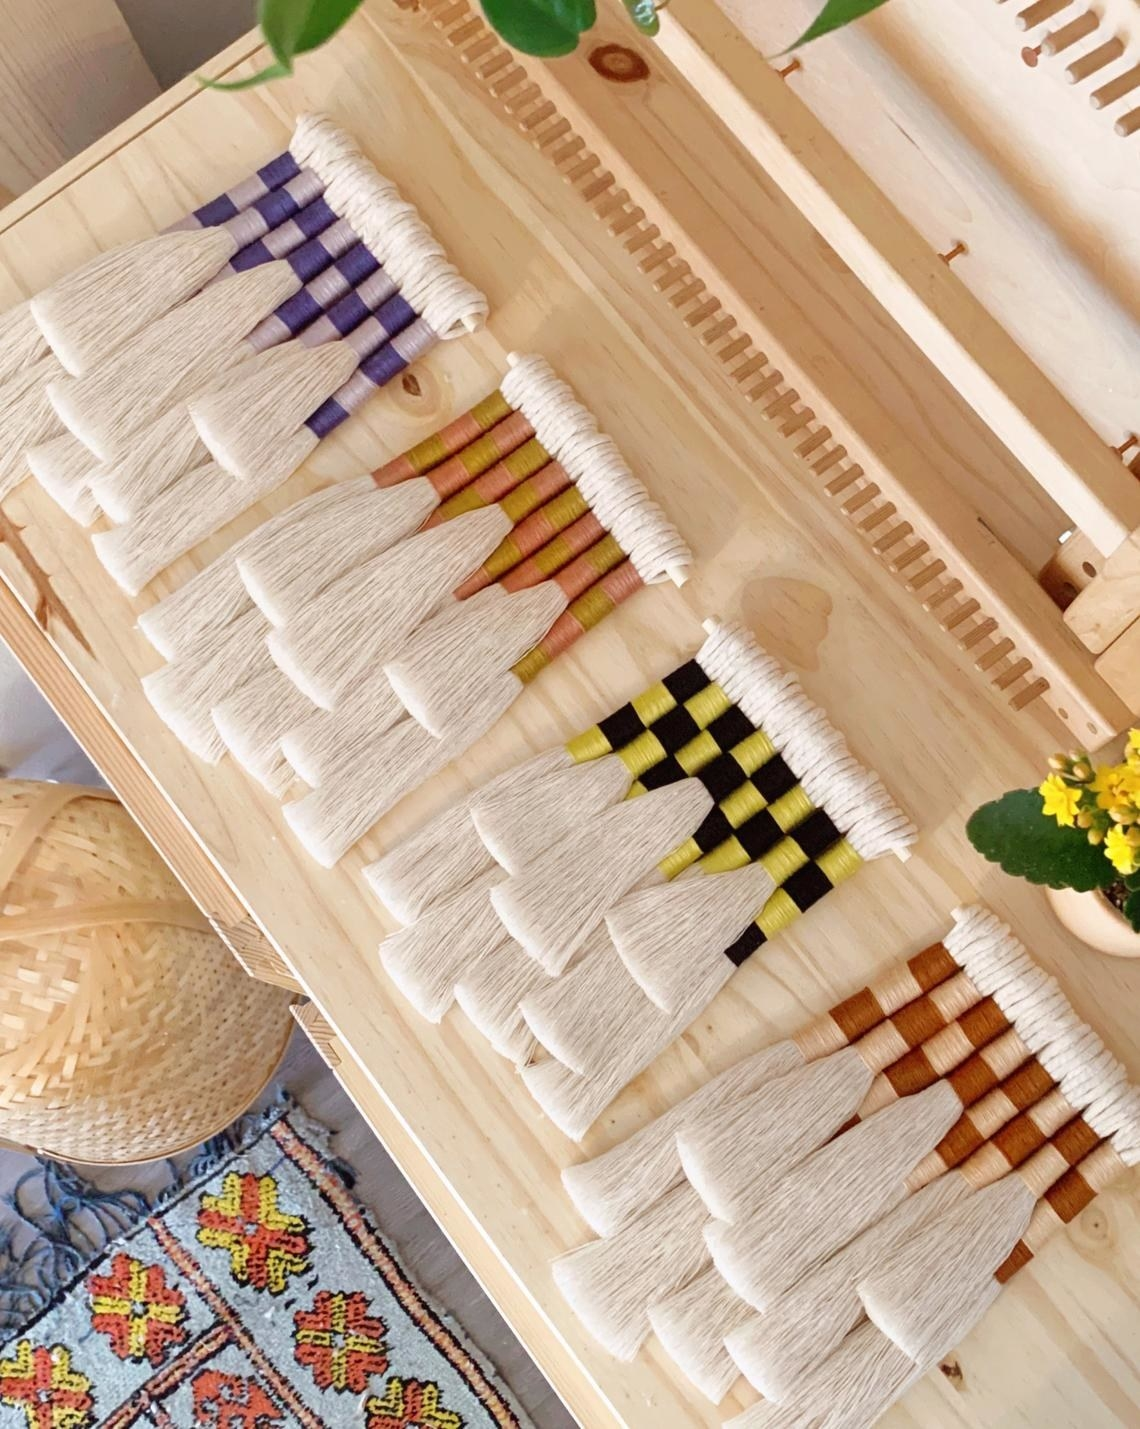 Four tassel wall hangings with checkered fiber pattern